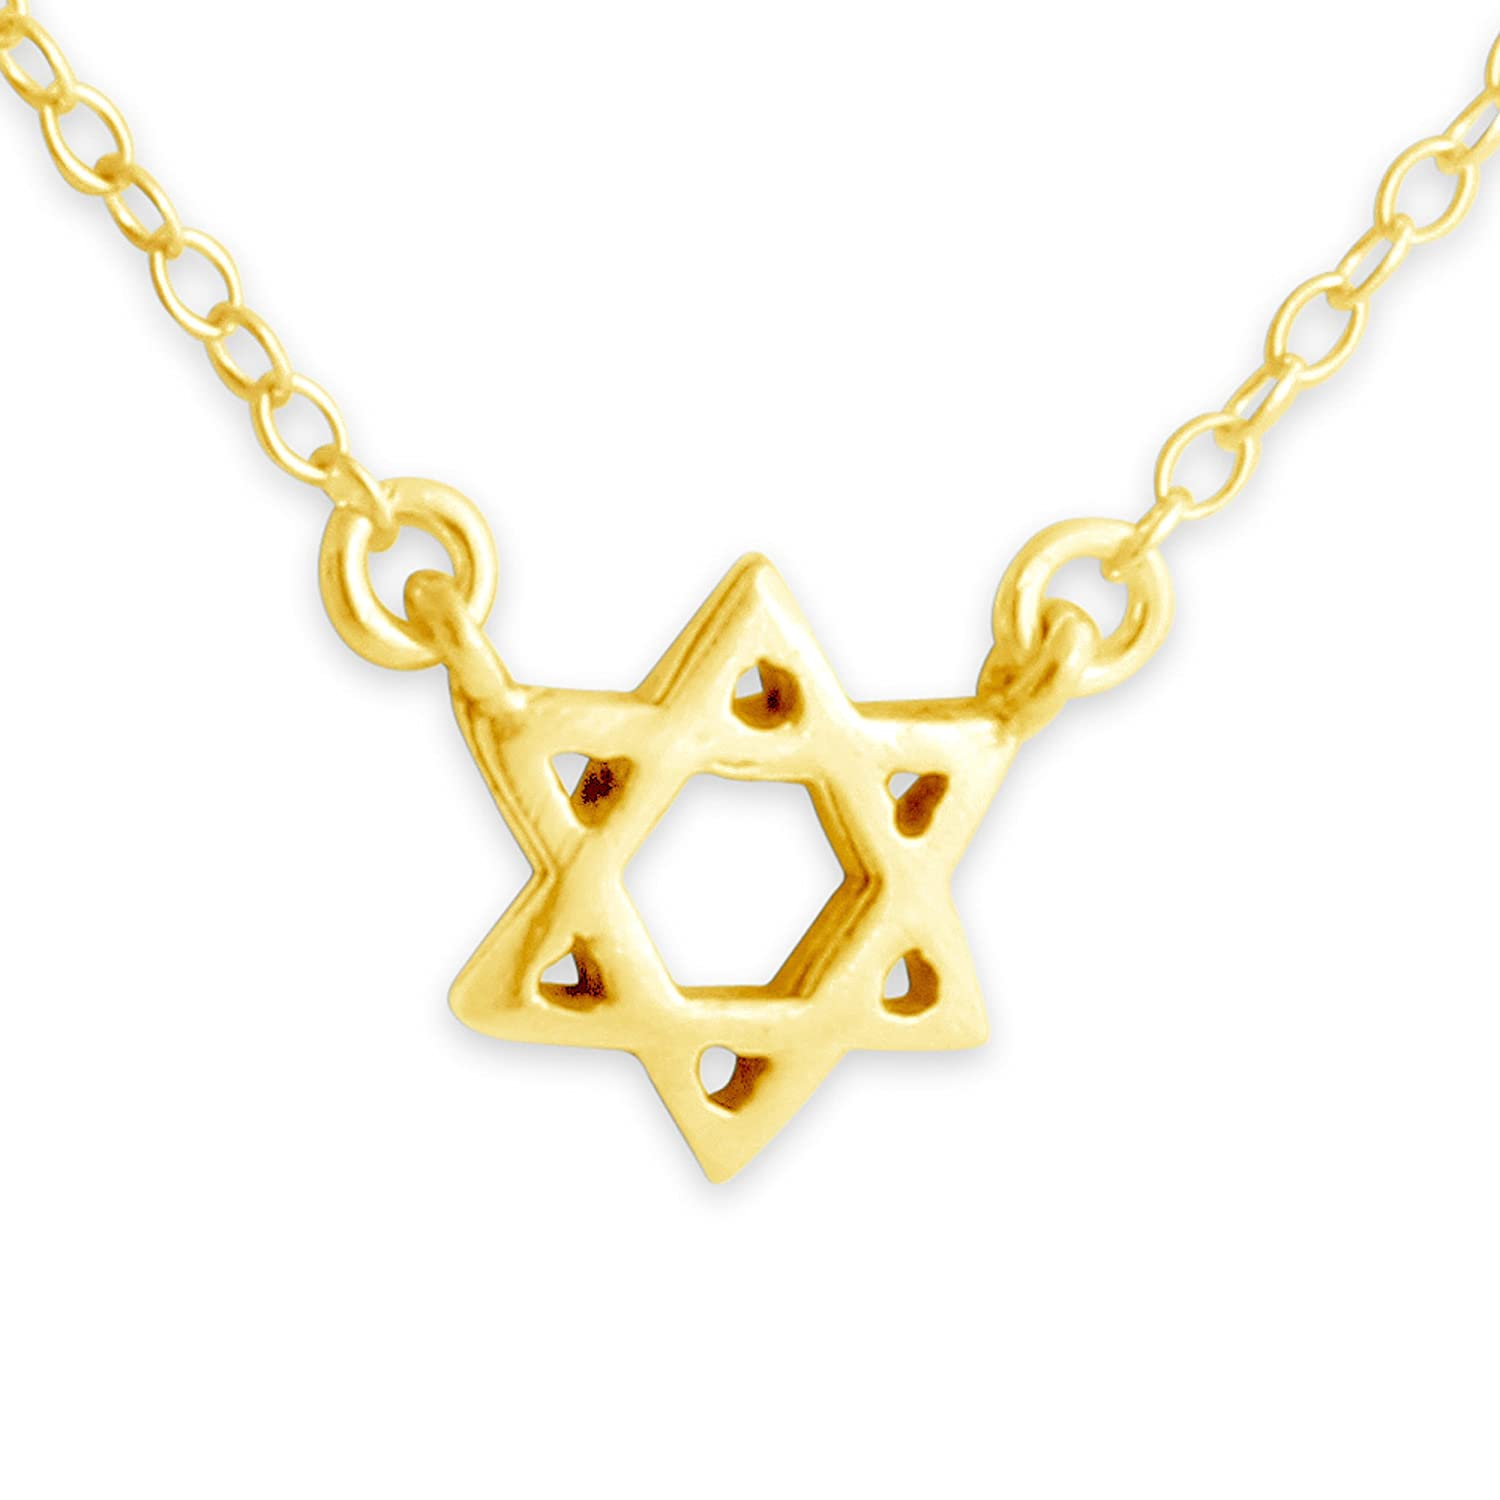 Belcho USA Sterling Silver Handcrafted Star of David Jump Ring Necklace